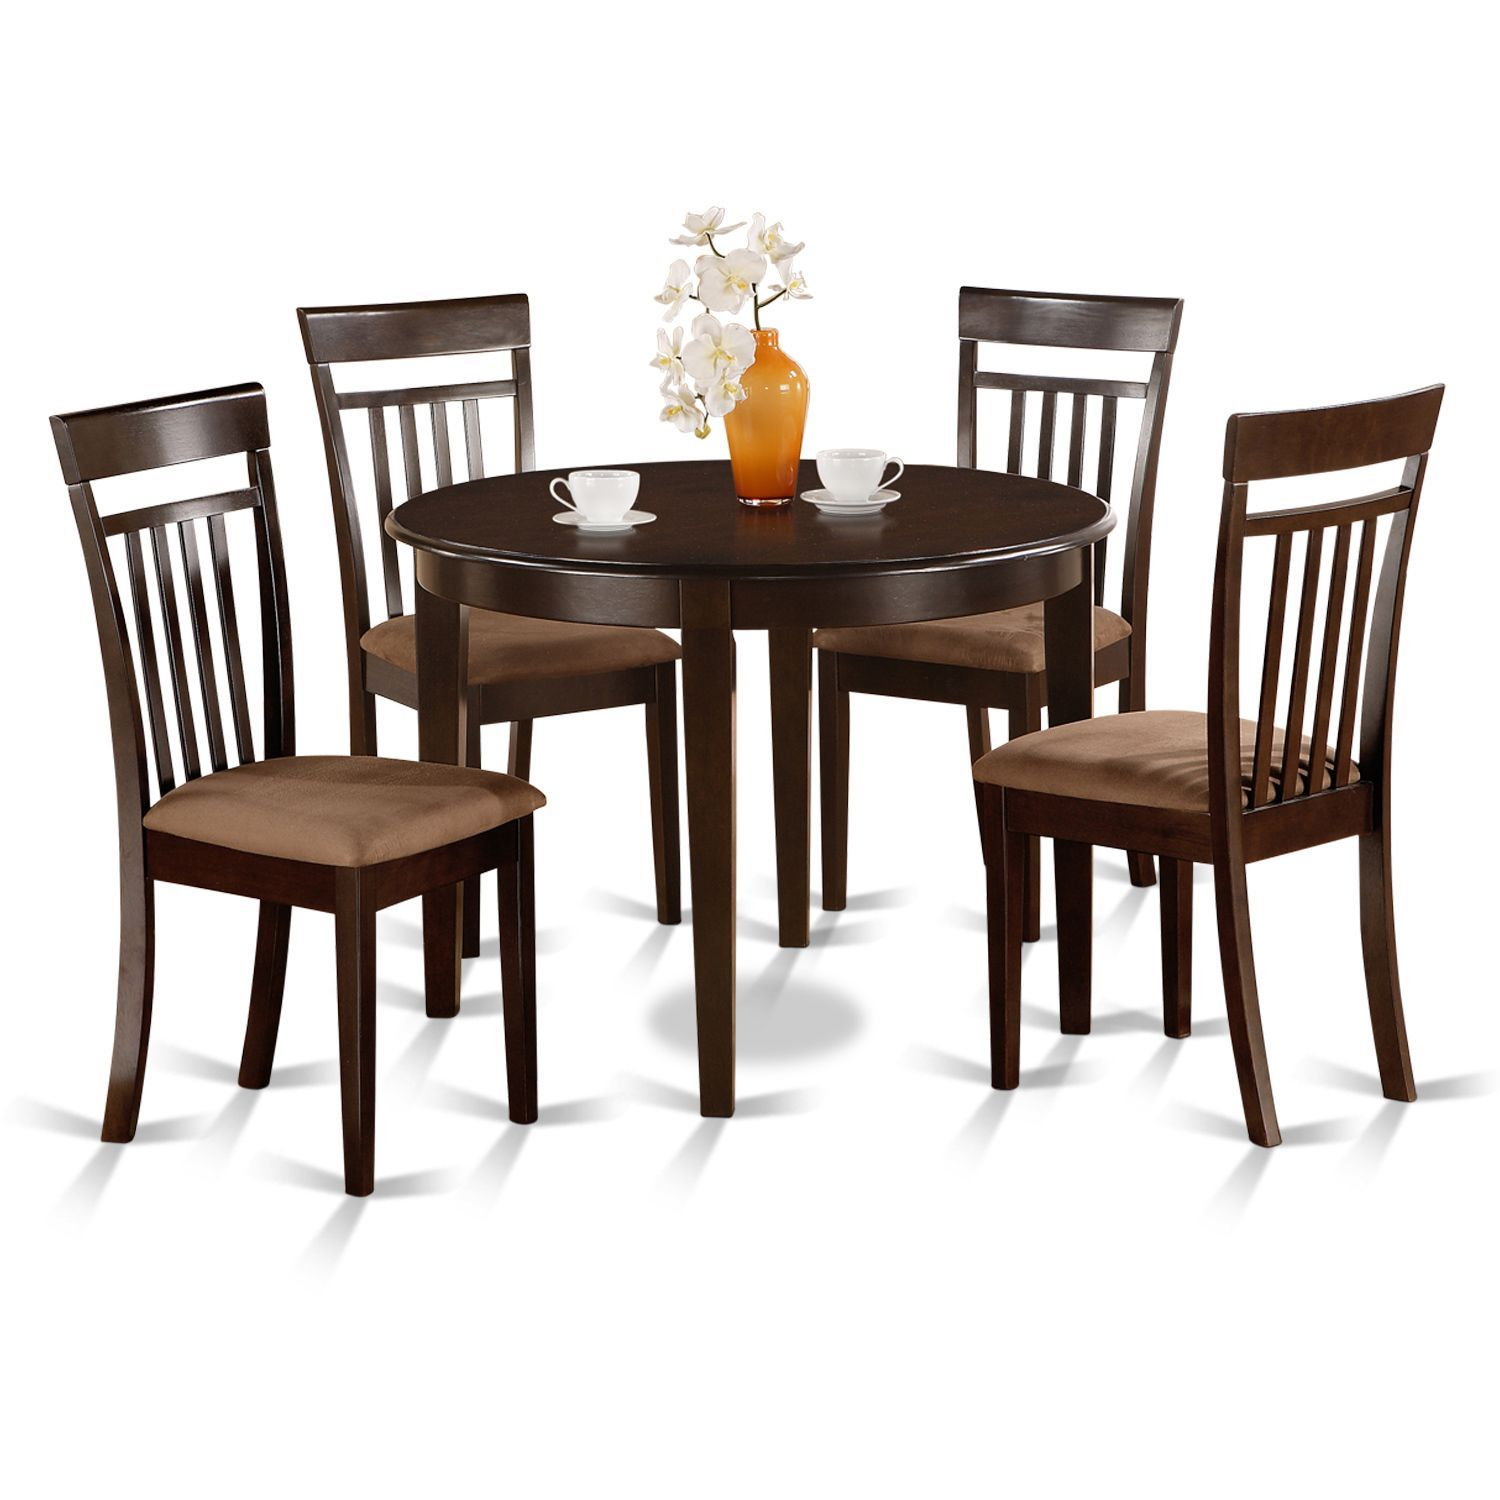 Small round kitchen table  Small Round piece Kitchen Table and  Dining Chairs  Products